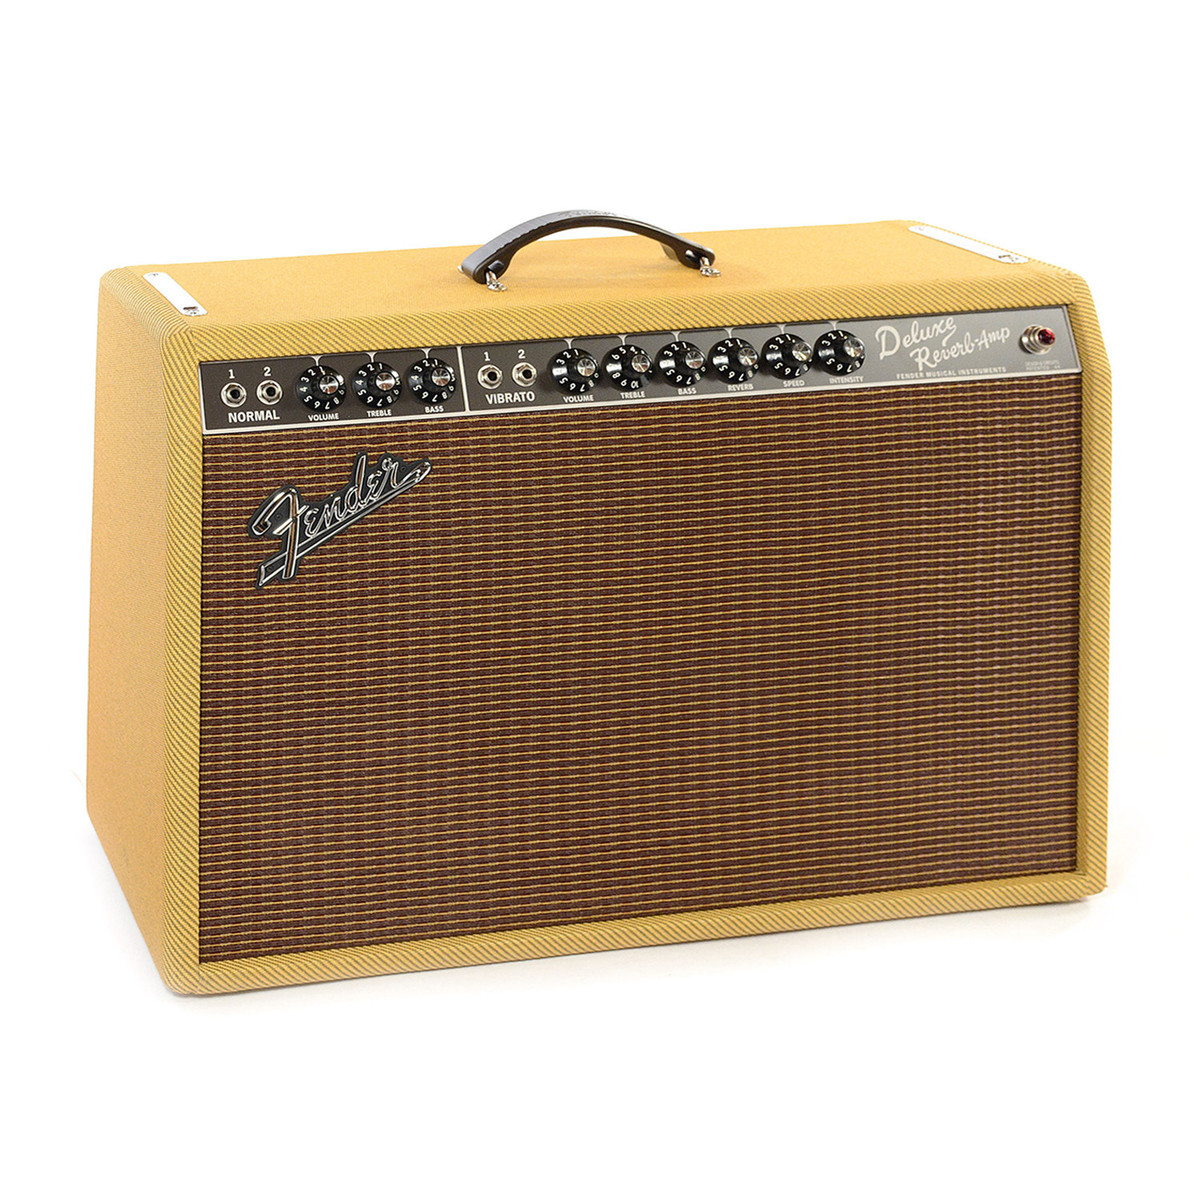 fender 39 65 deluxe reverb lacquered tweed limited edition amplifier at gear4music. Black Bedroom Furniture Sets. Home Design Ideas